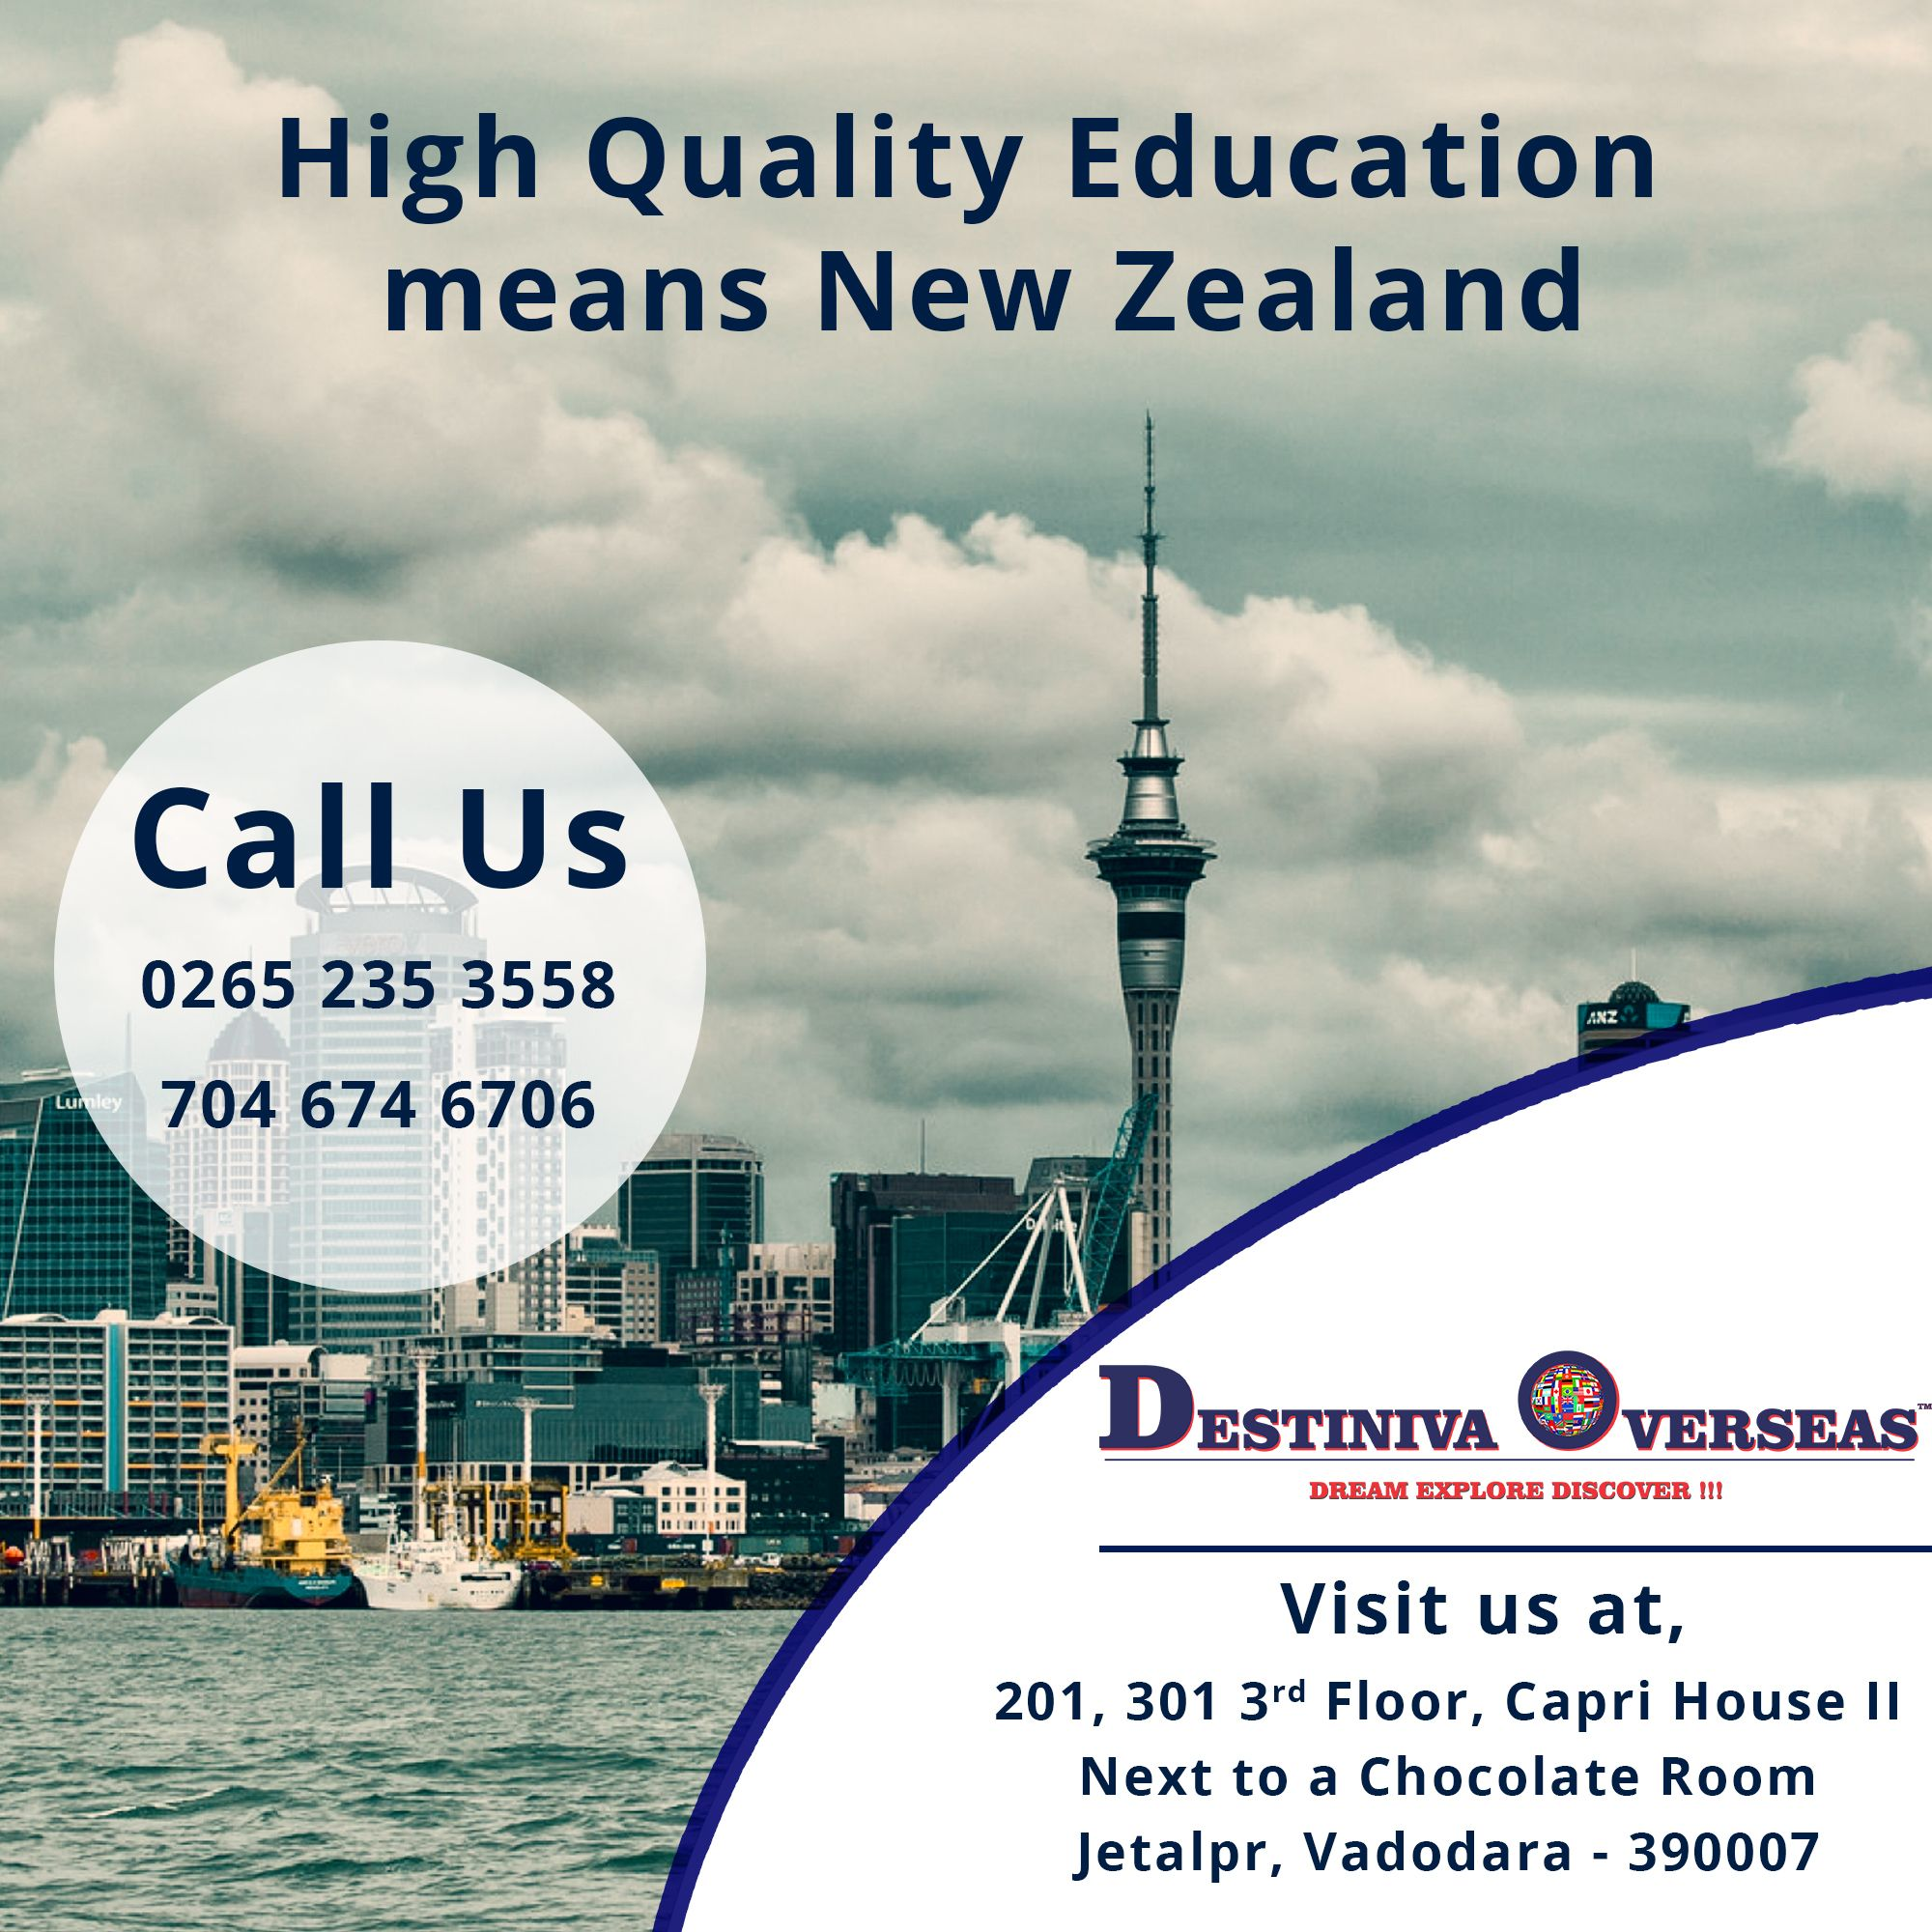 New Zealand Has A Reputation As A Provider Of Quality Education Offering Excellent Study Opportunities It Has A Selection Of 8 Study In New Zealand Study In New Zealand Education Study